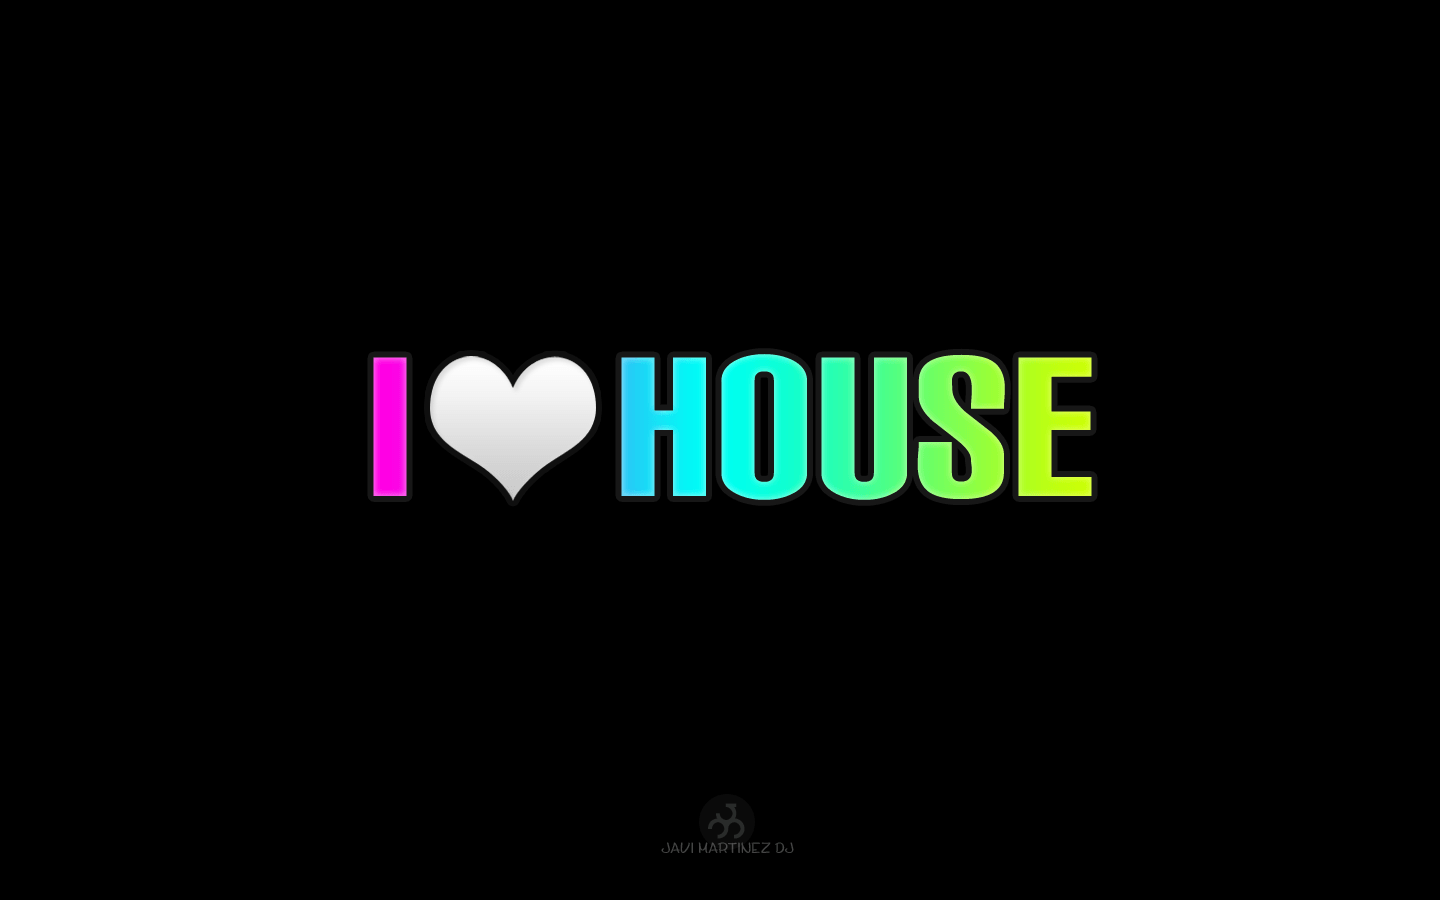 Free Download I Love House Music Wallpapers 1440x900 For